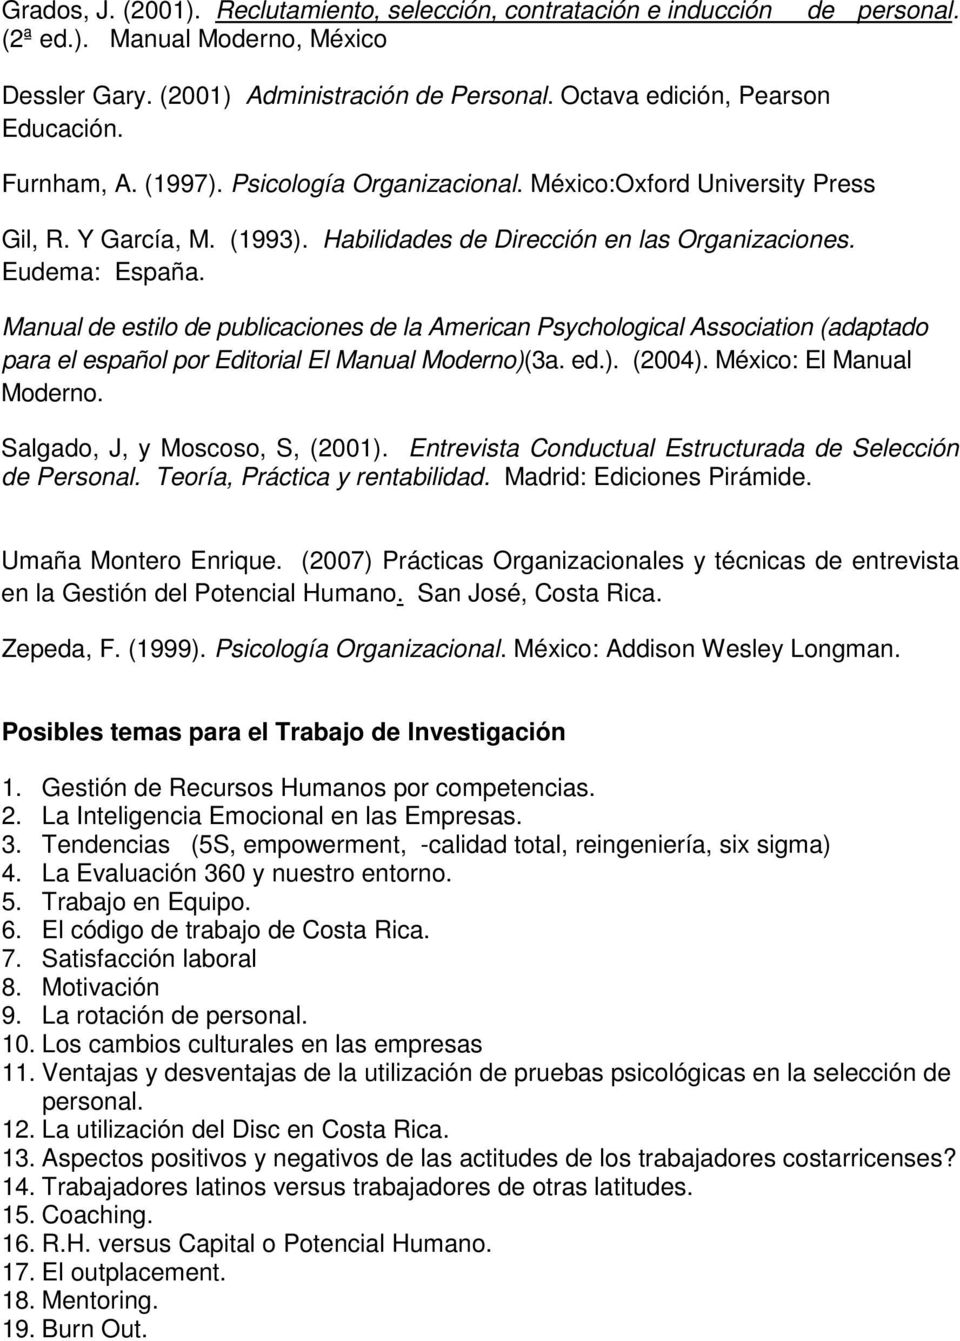 Manual de estilo de publicaciones de la American Psychological Association (adaptado para el español por Editorial El Manual Moderno)(3a. ed.). (2004). México: El Manual Moderno.